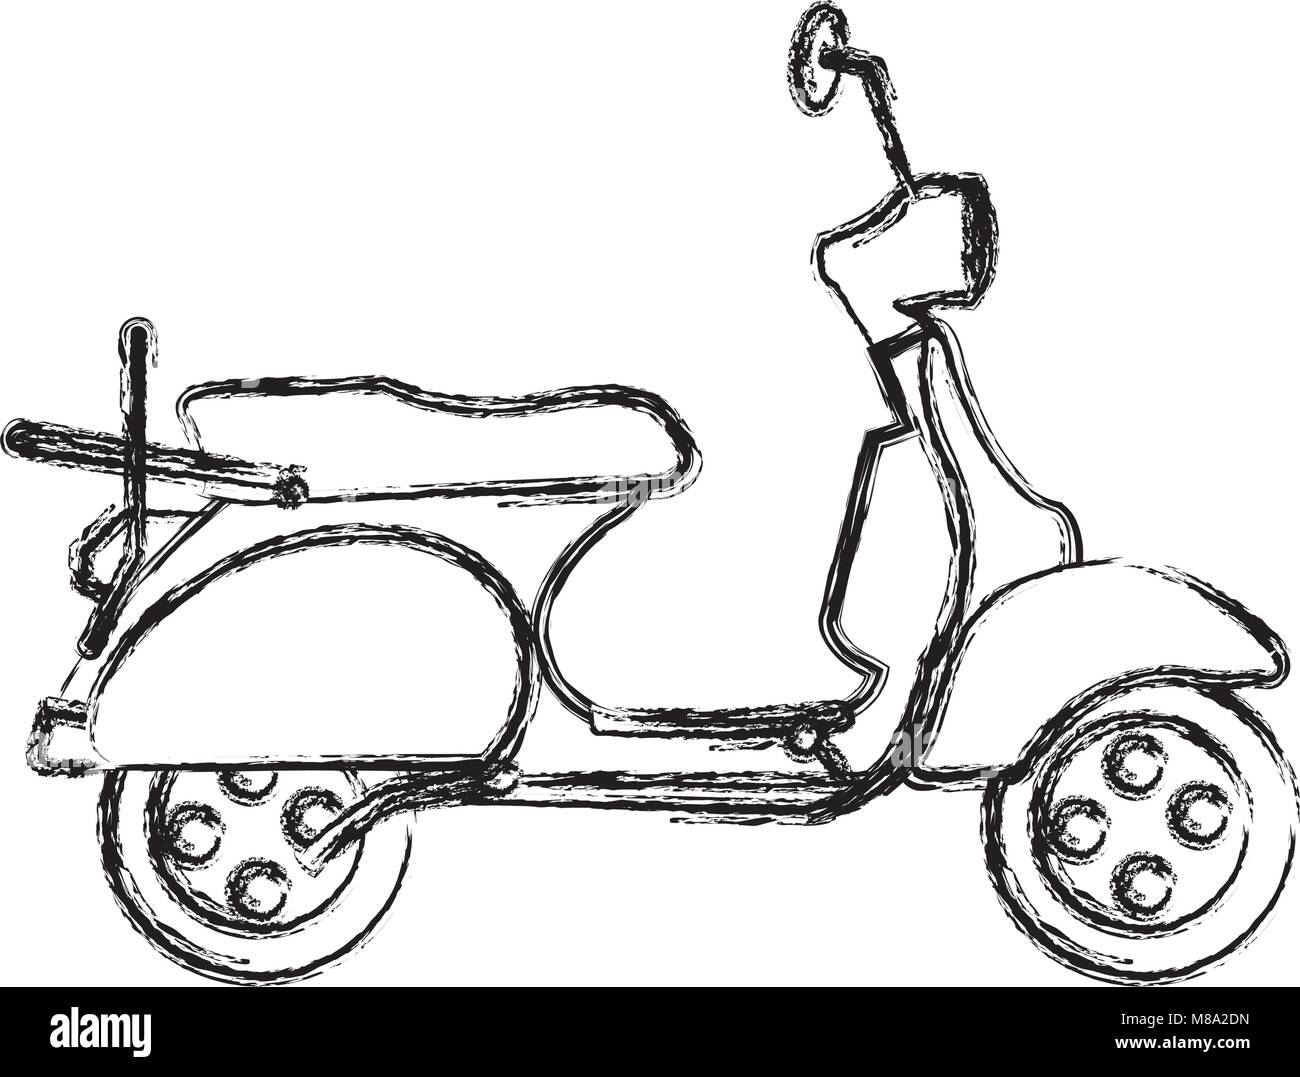 grunge motocycle transportation travel with mirror and wheels - Stock Vector